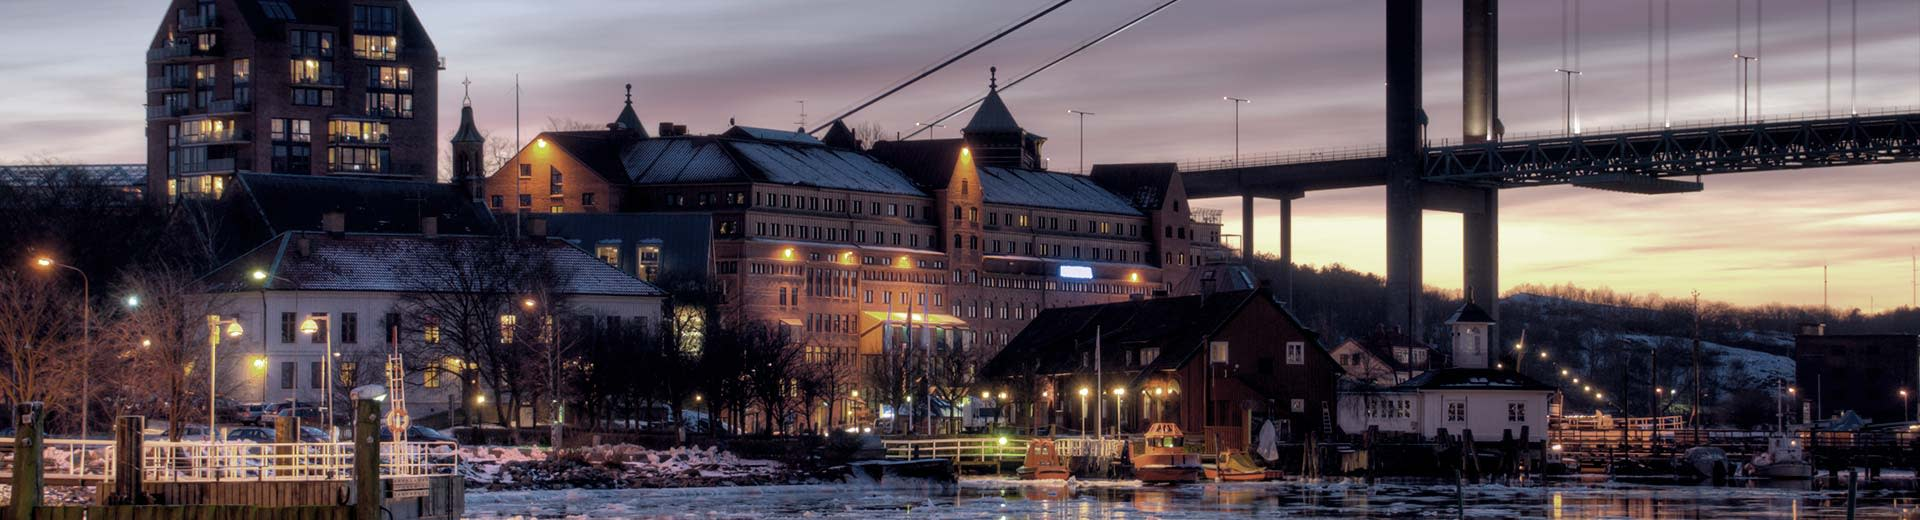 Historic buildings along the banks of Gothenburg at night